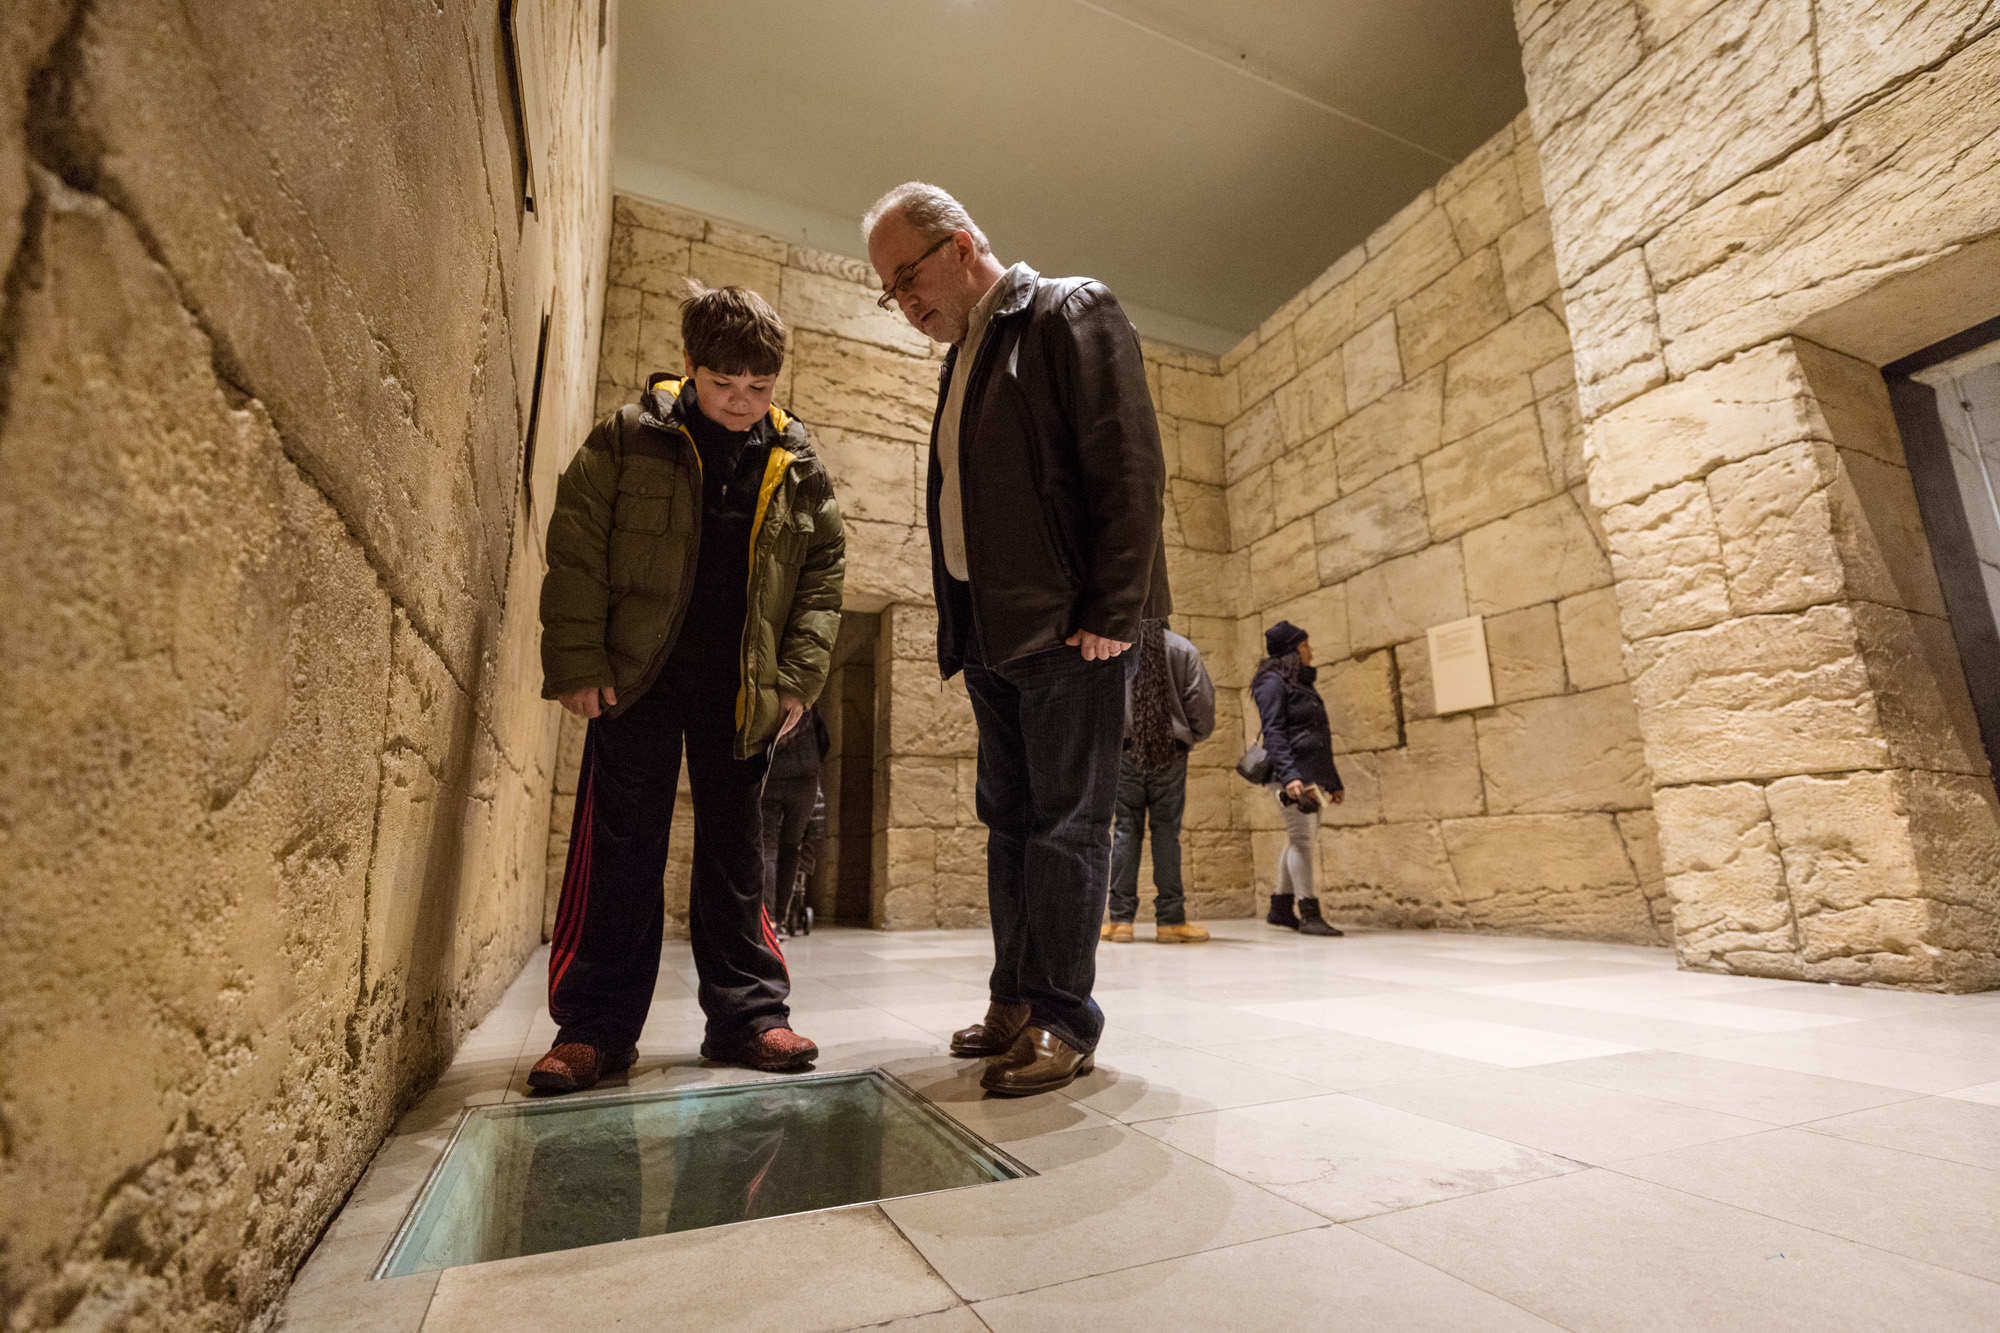 Standing in the ancient Egyptian tomb in the Inside Ancient Egypt exhibition, an adult and child look down at a glass-covered opening in the floor.